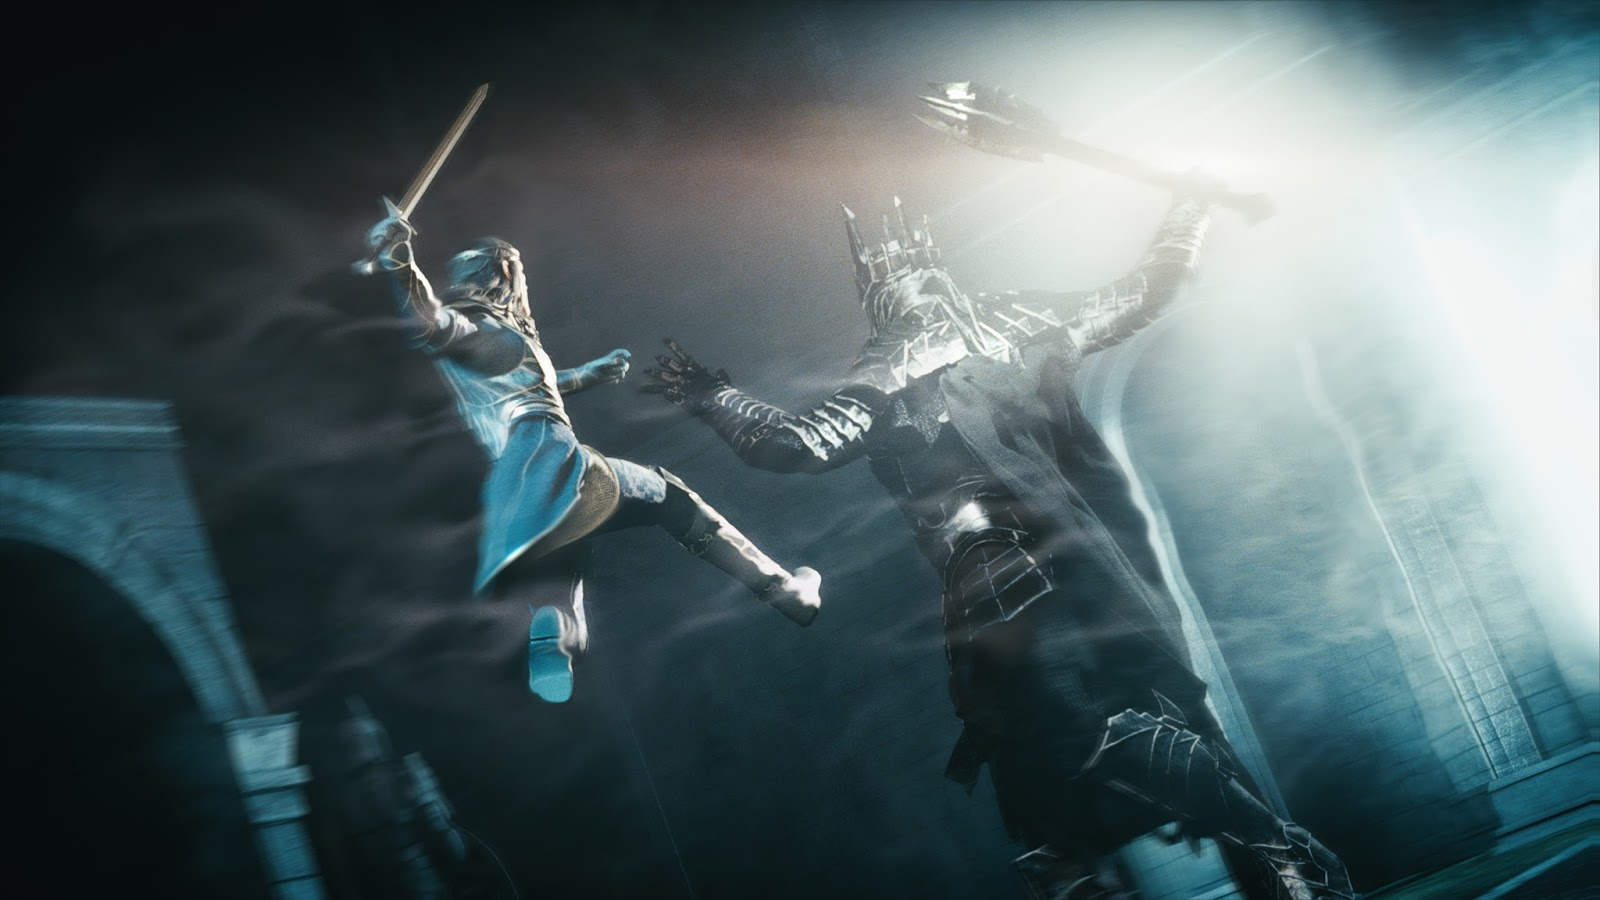 Middle-Earth: Shadow of Mordor - The Bright Lord DLC - We Know Gamers